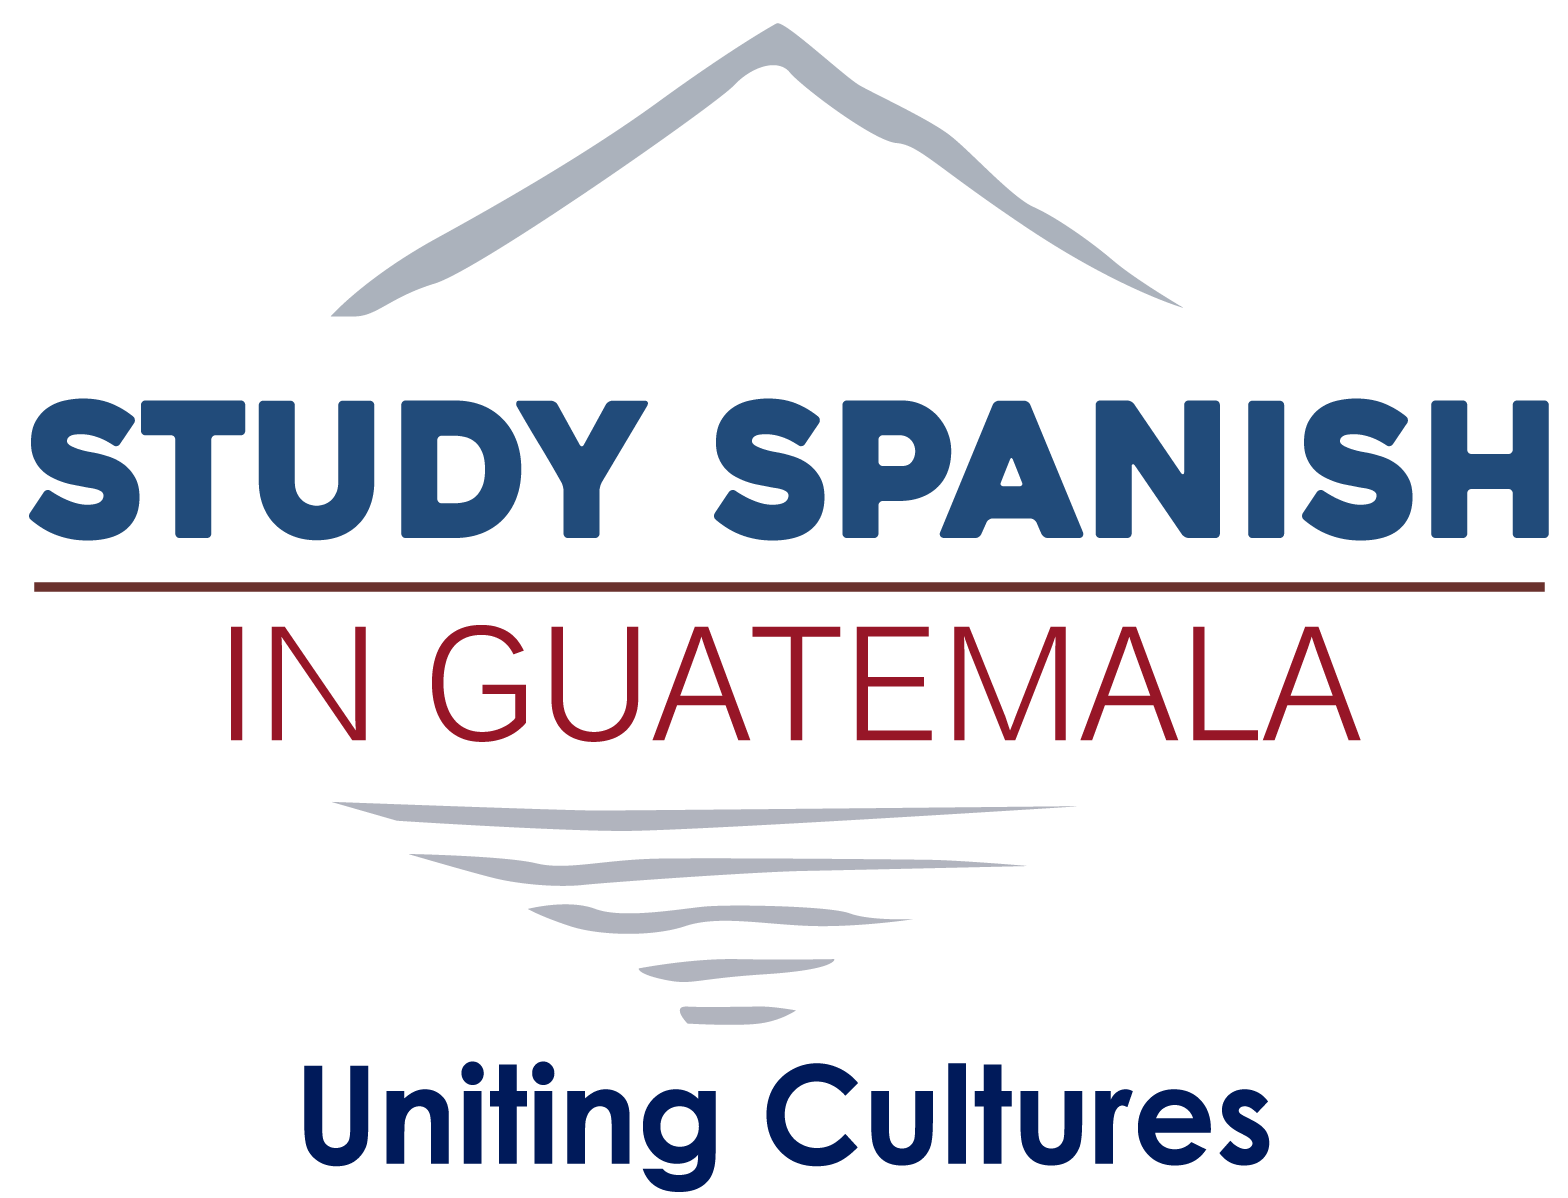 Study Spanish in Guatemala